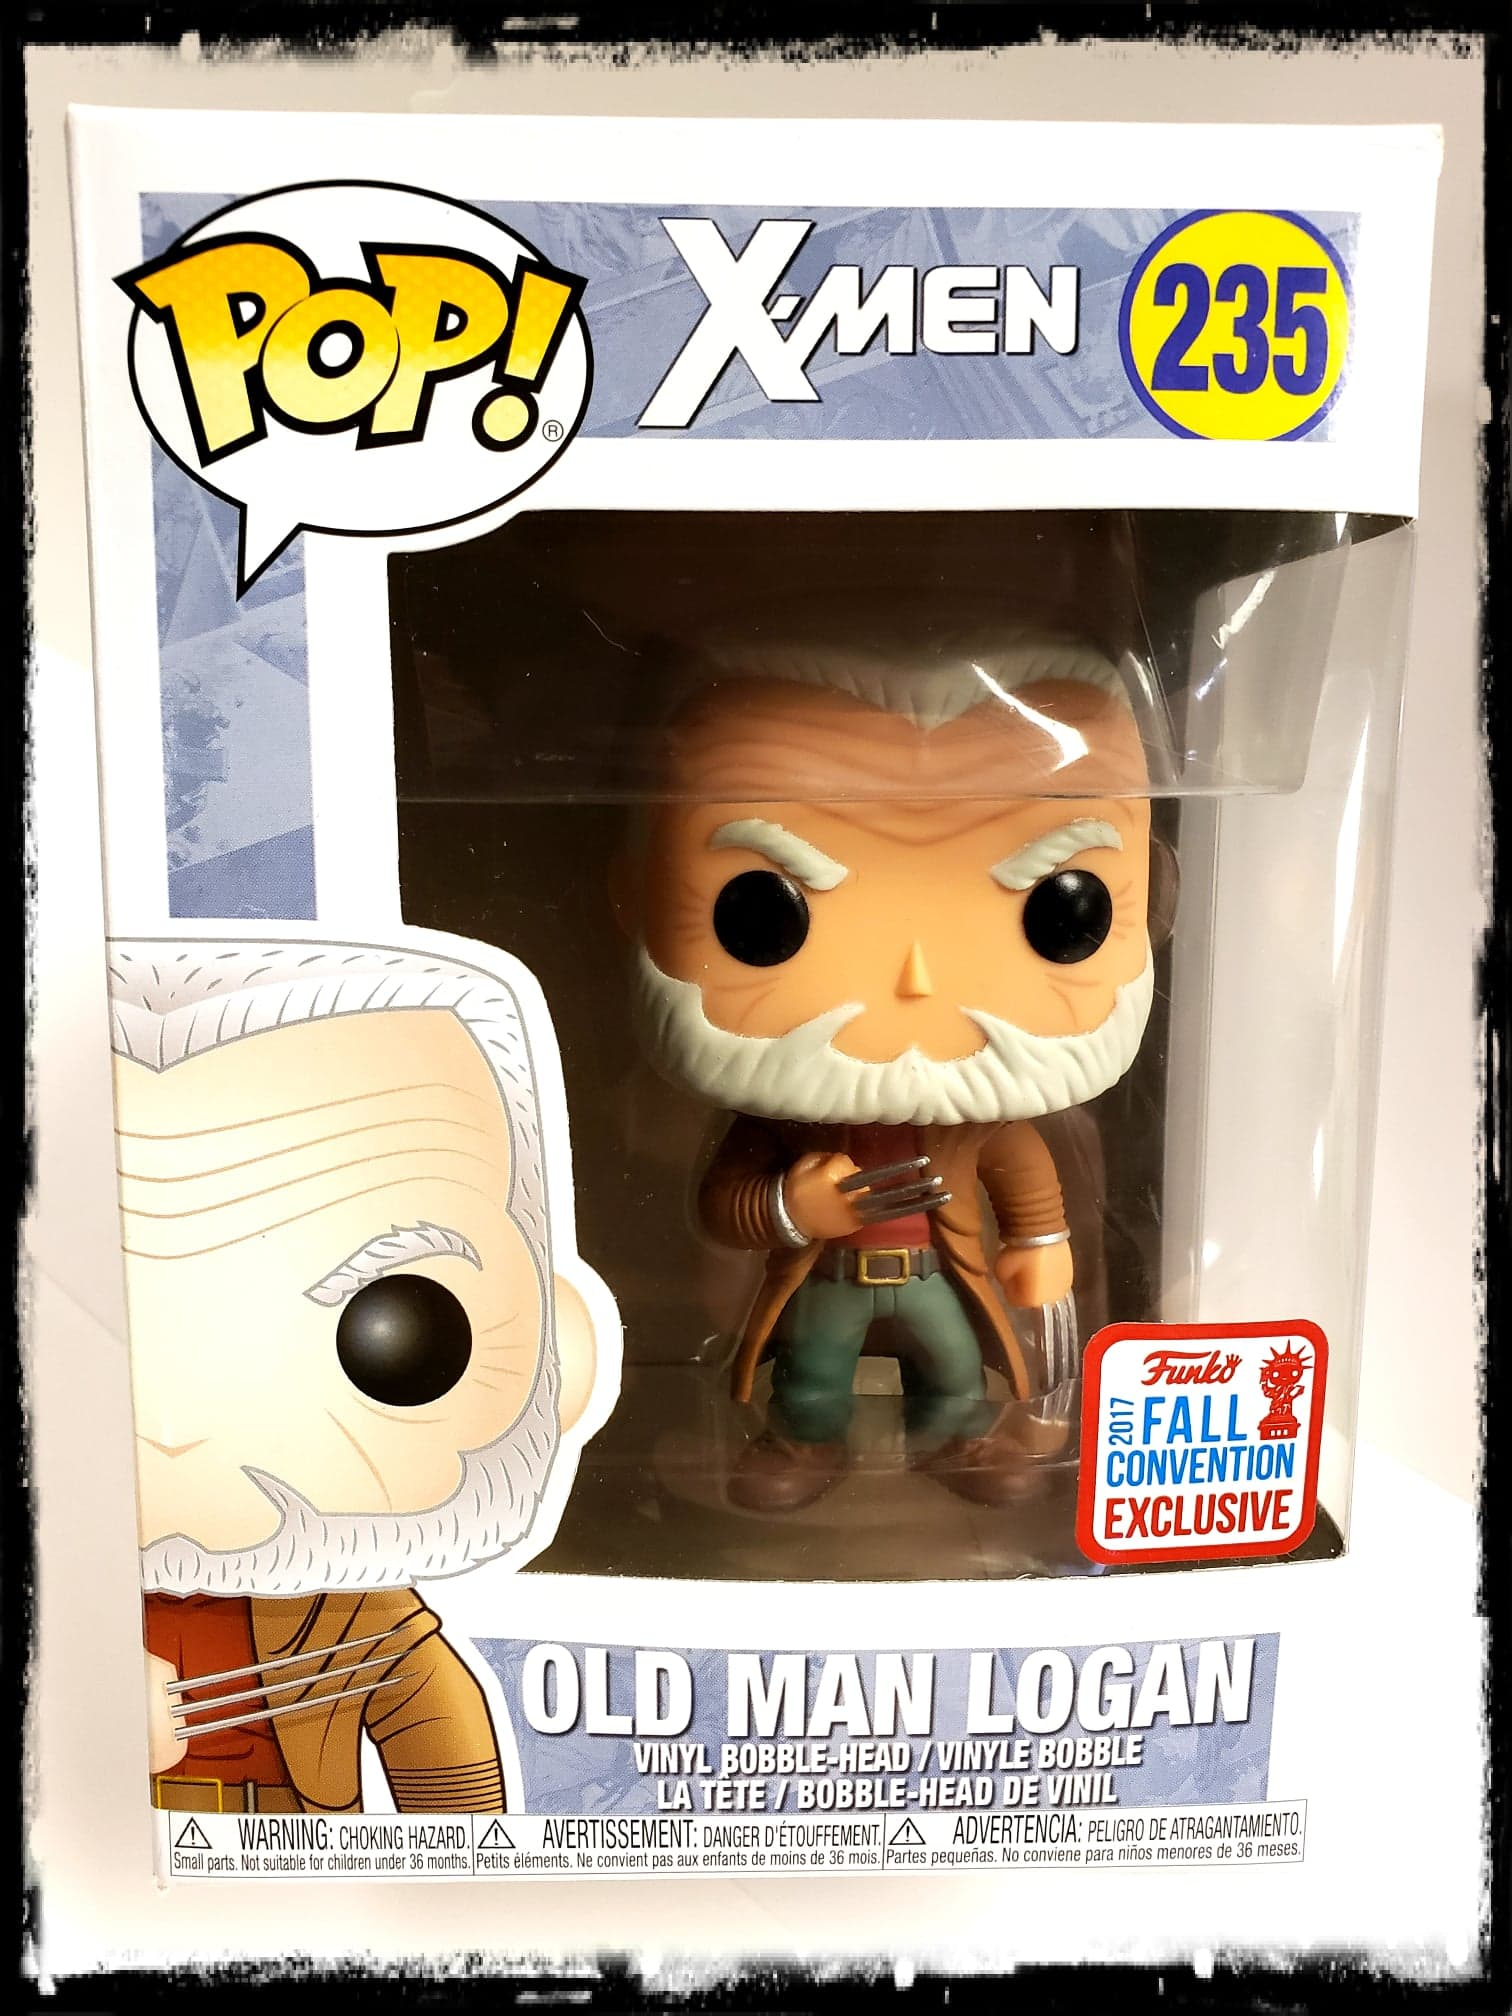 OLD MAN LOGAN #235 - FALL CONVENTION EXCLUSIVE - FUNKO POP! (2017)